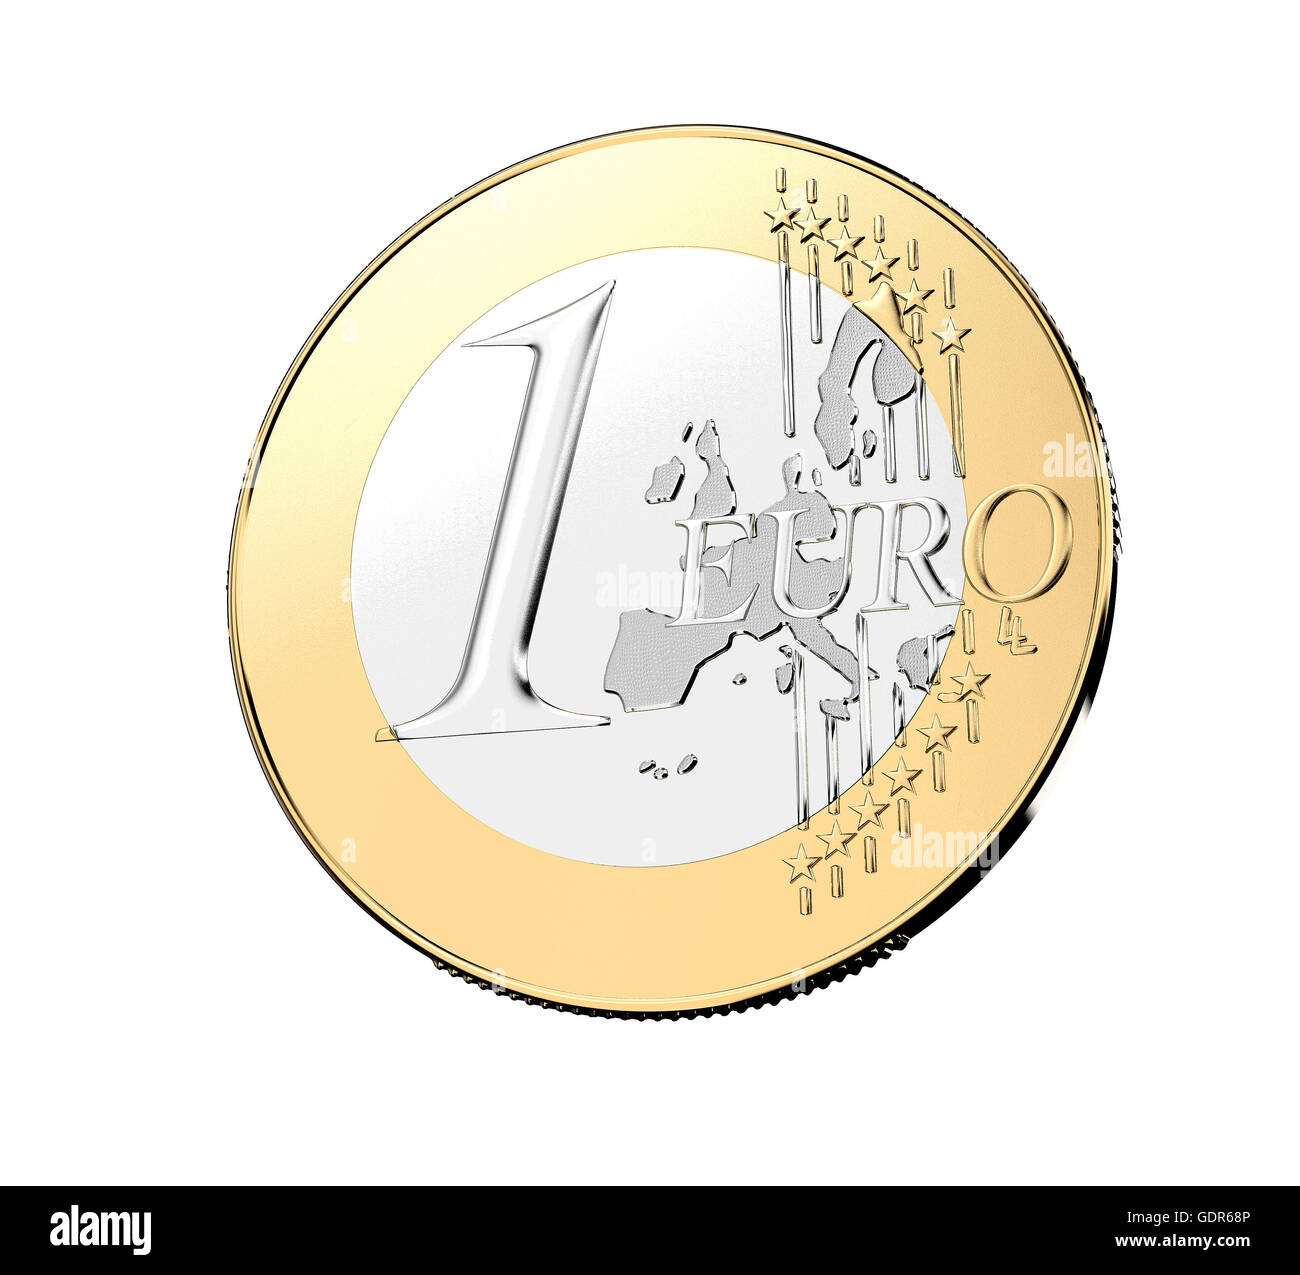 one euro coin isolated on a white background., 3d illustration Stock Photo